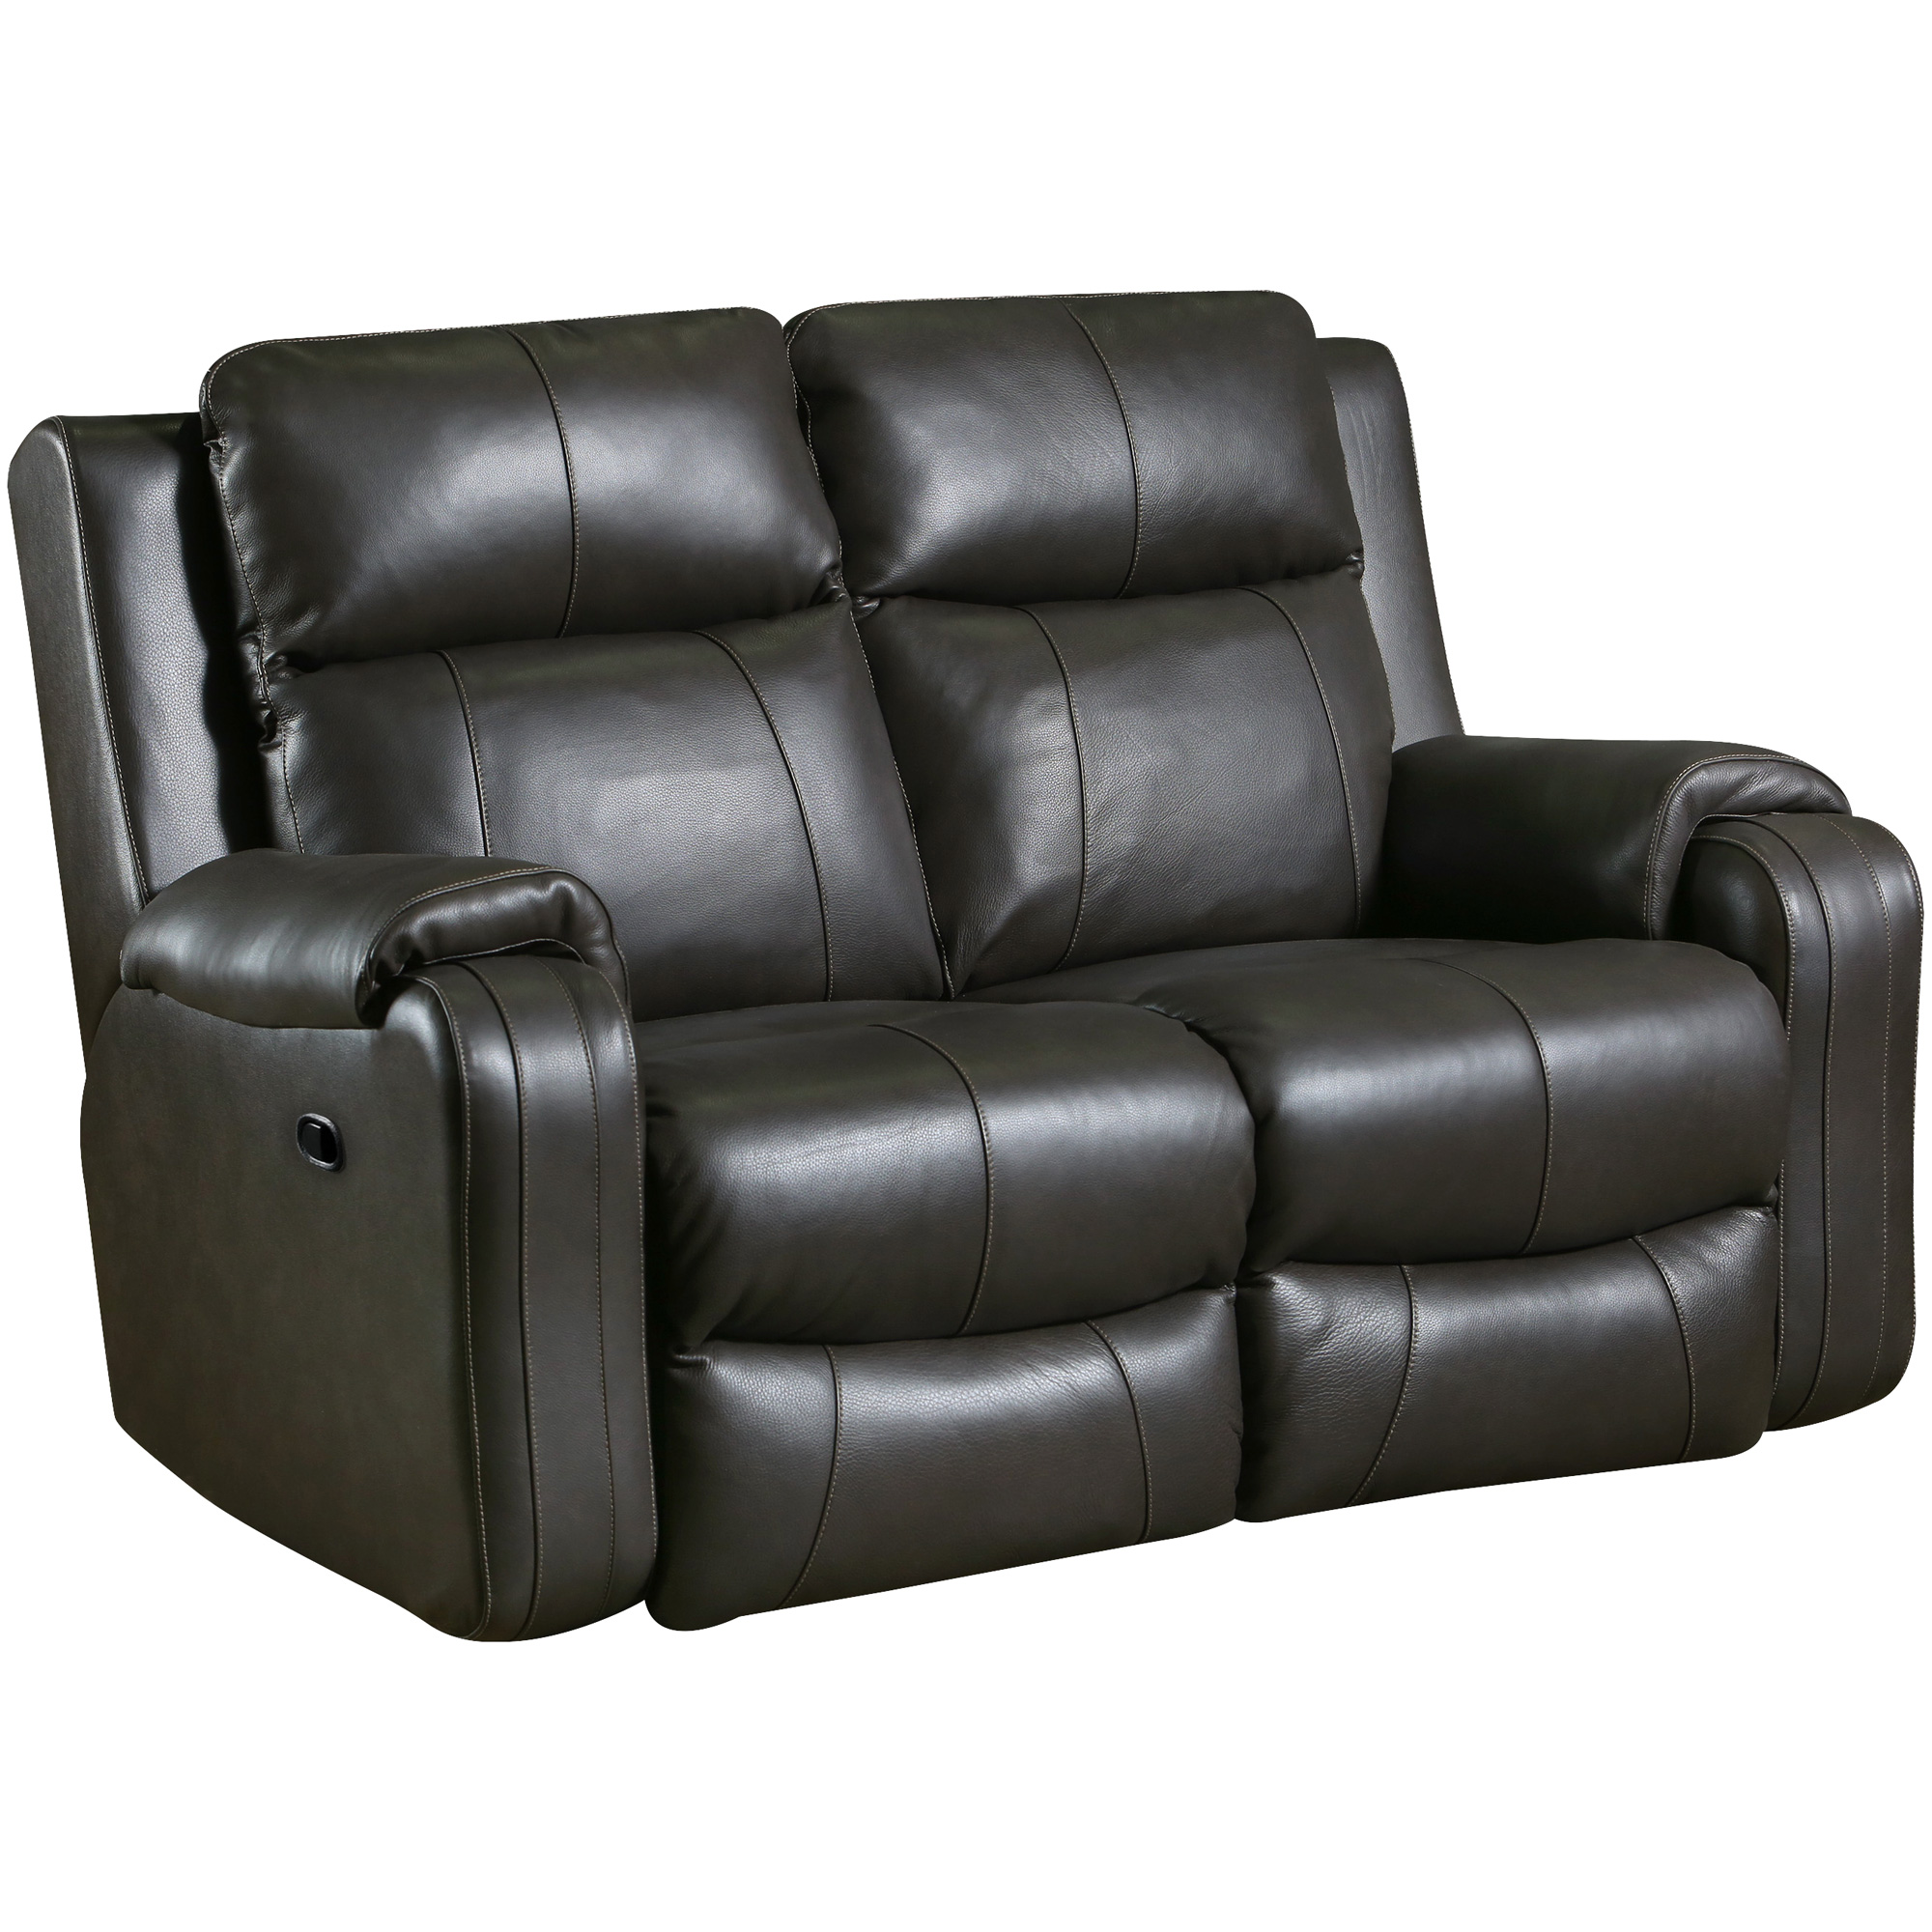 Southern Motion | Contour Leather Fossil Reclining Loveseat Sofa